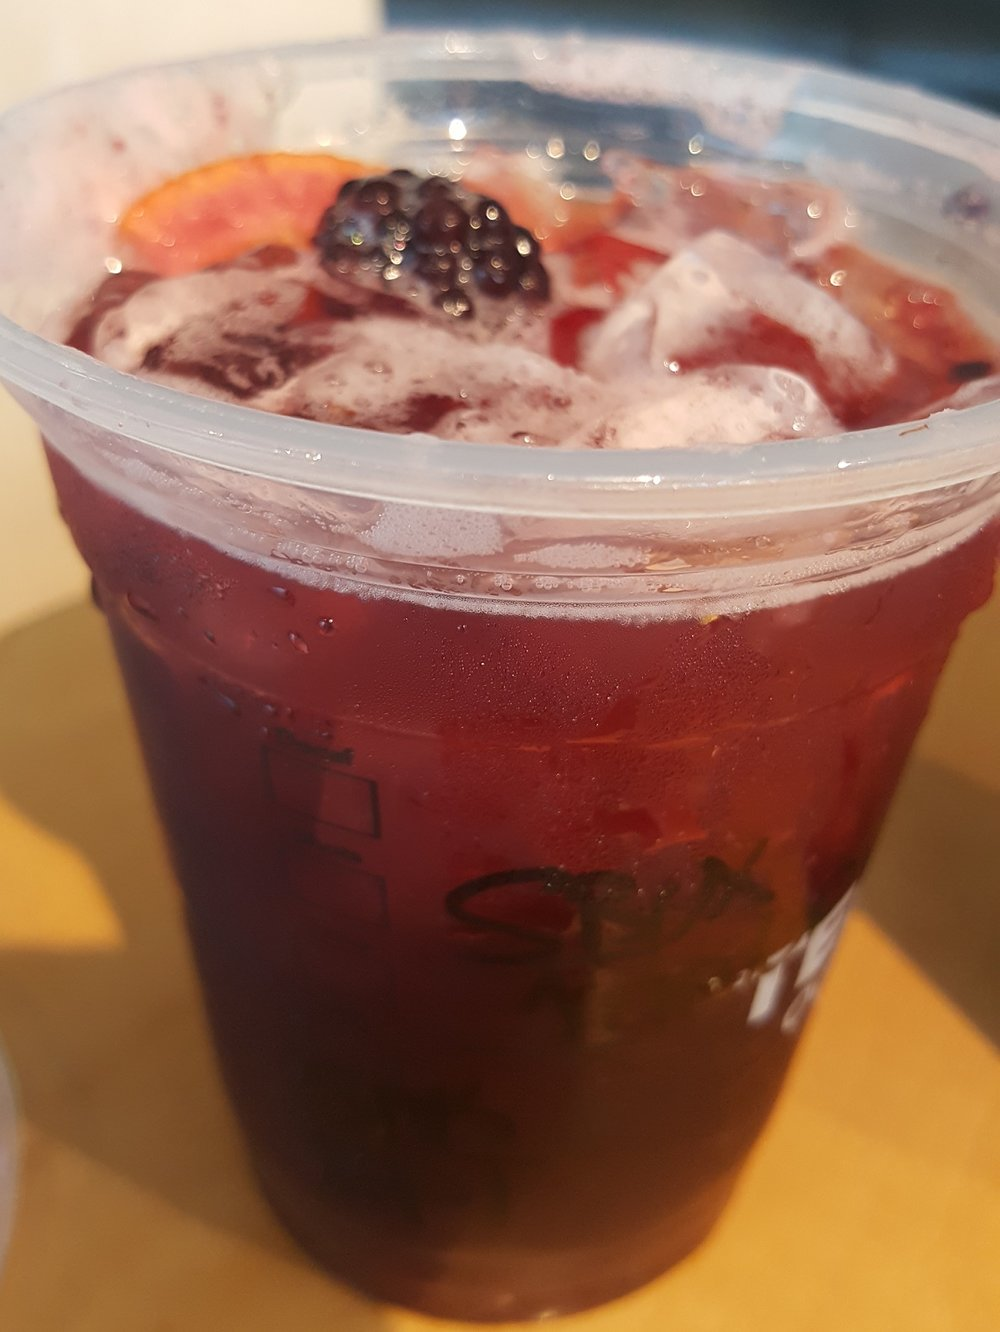 20160708_154028 new starbucks sangria drink